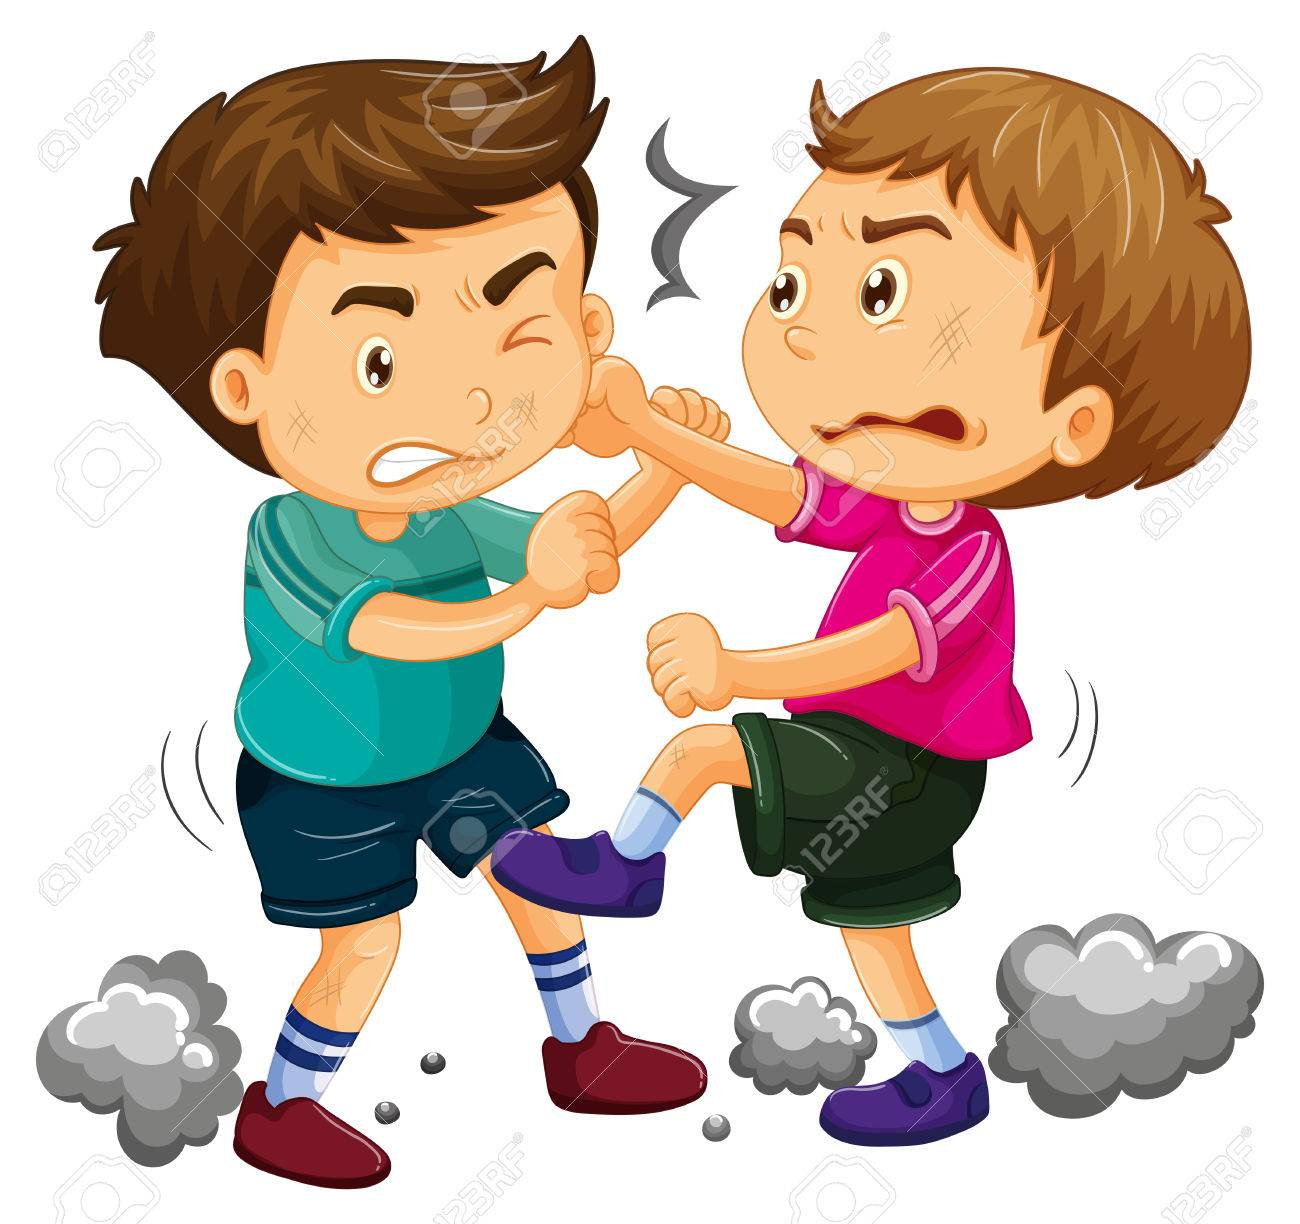 Two young boys fighting illustration.